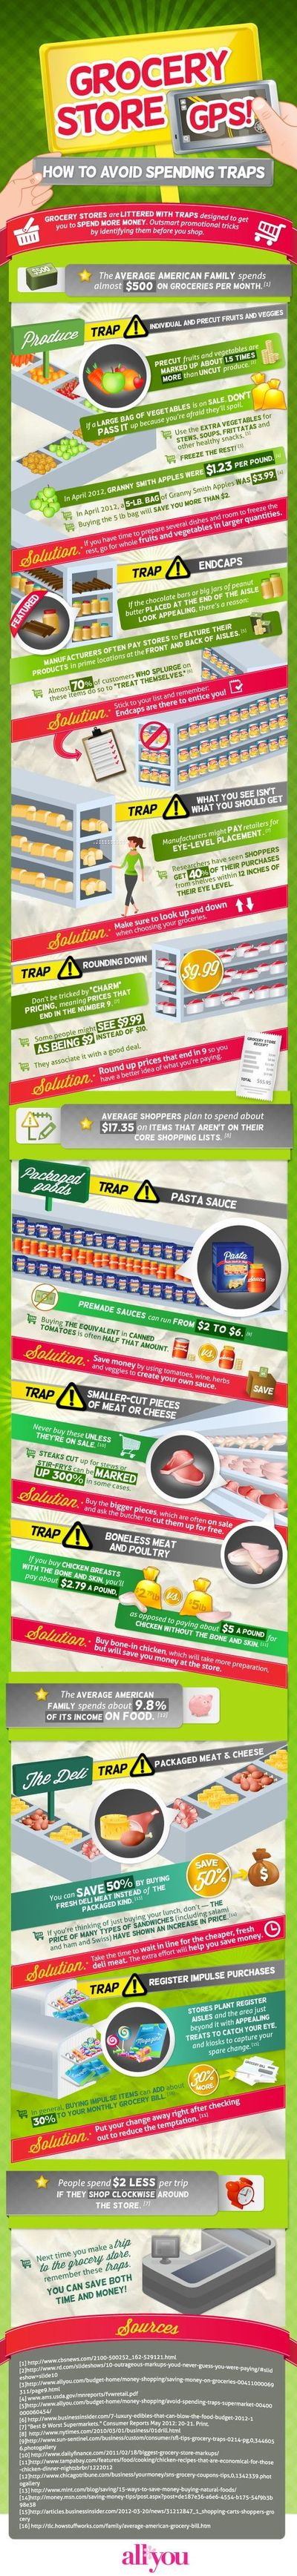 All You Infographic: Grocery Store GPS How to Avoid Spending Traps